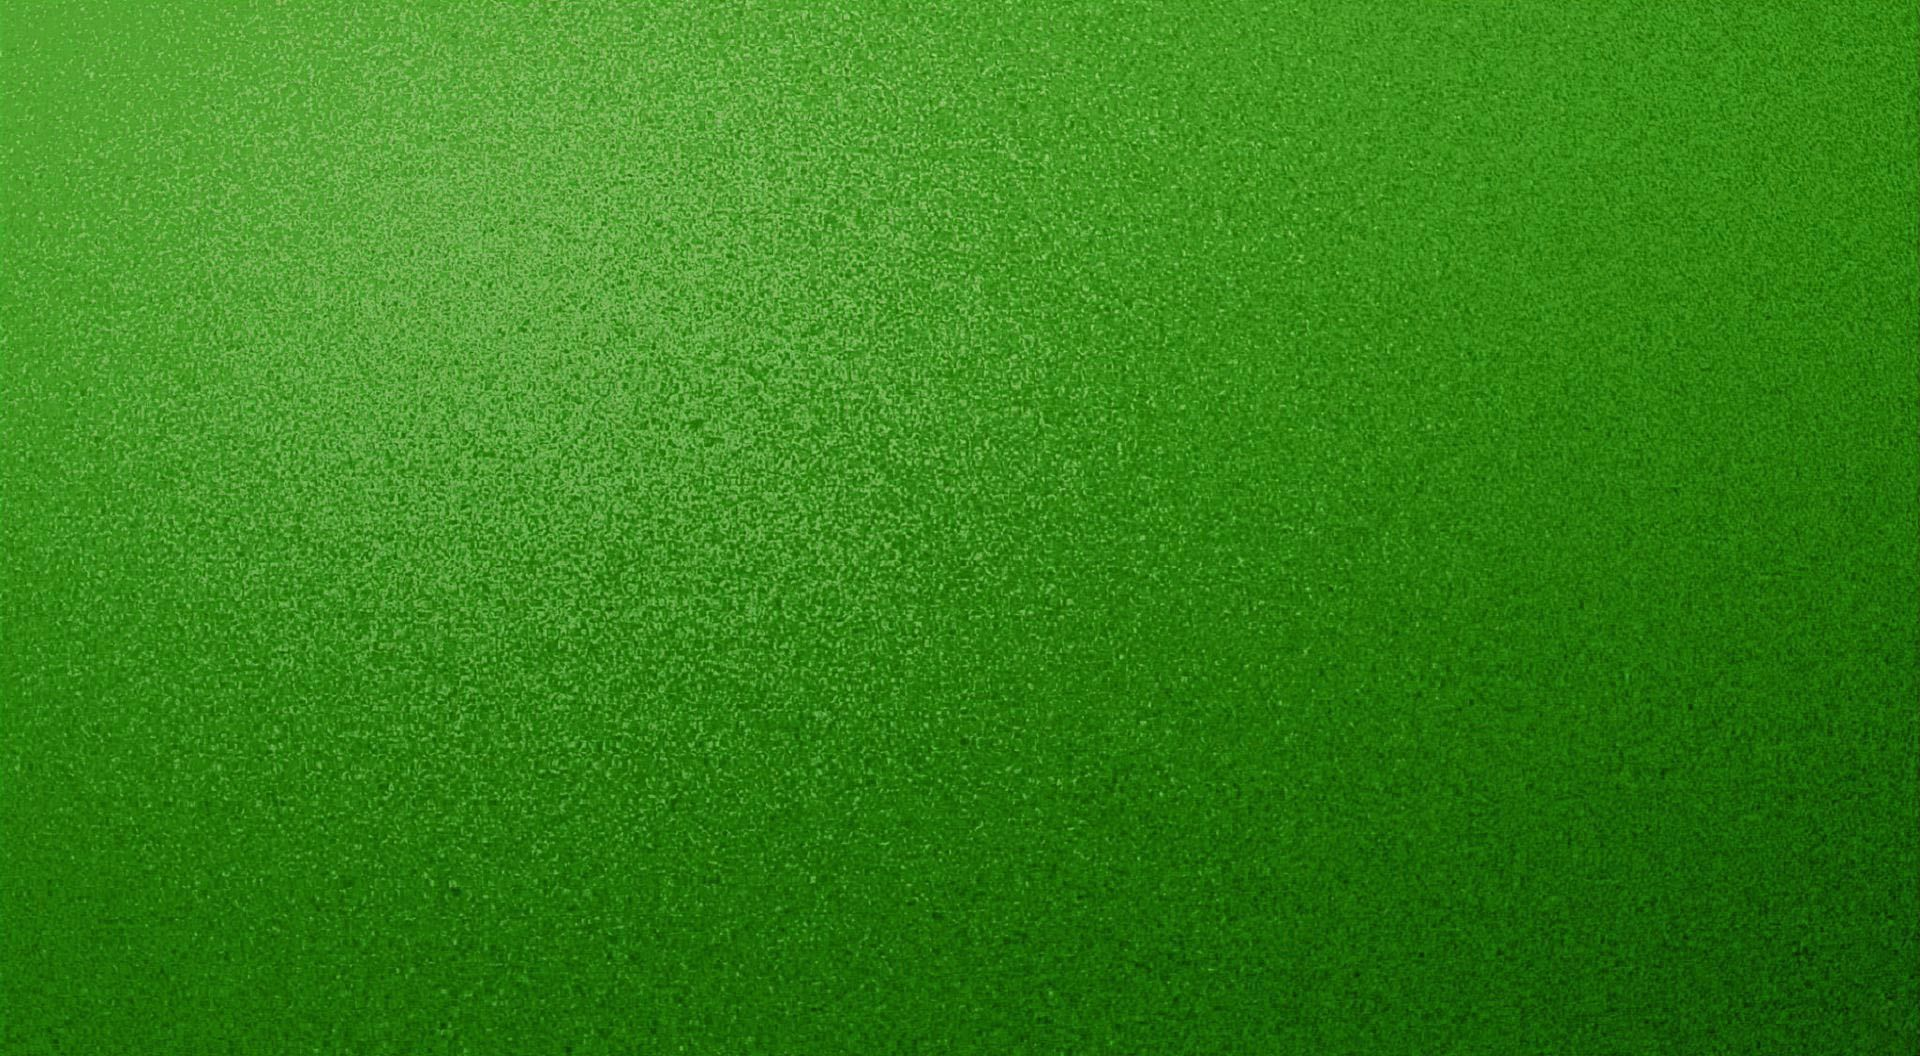 green background hd 3d - photo #43